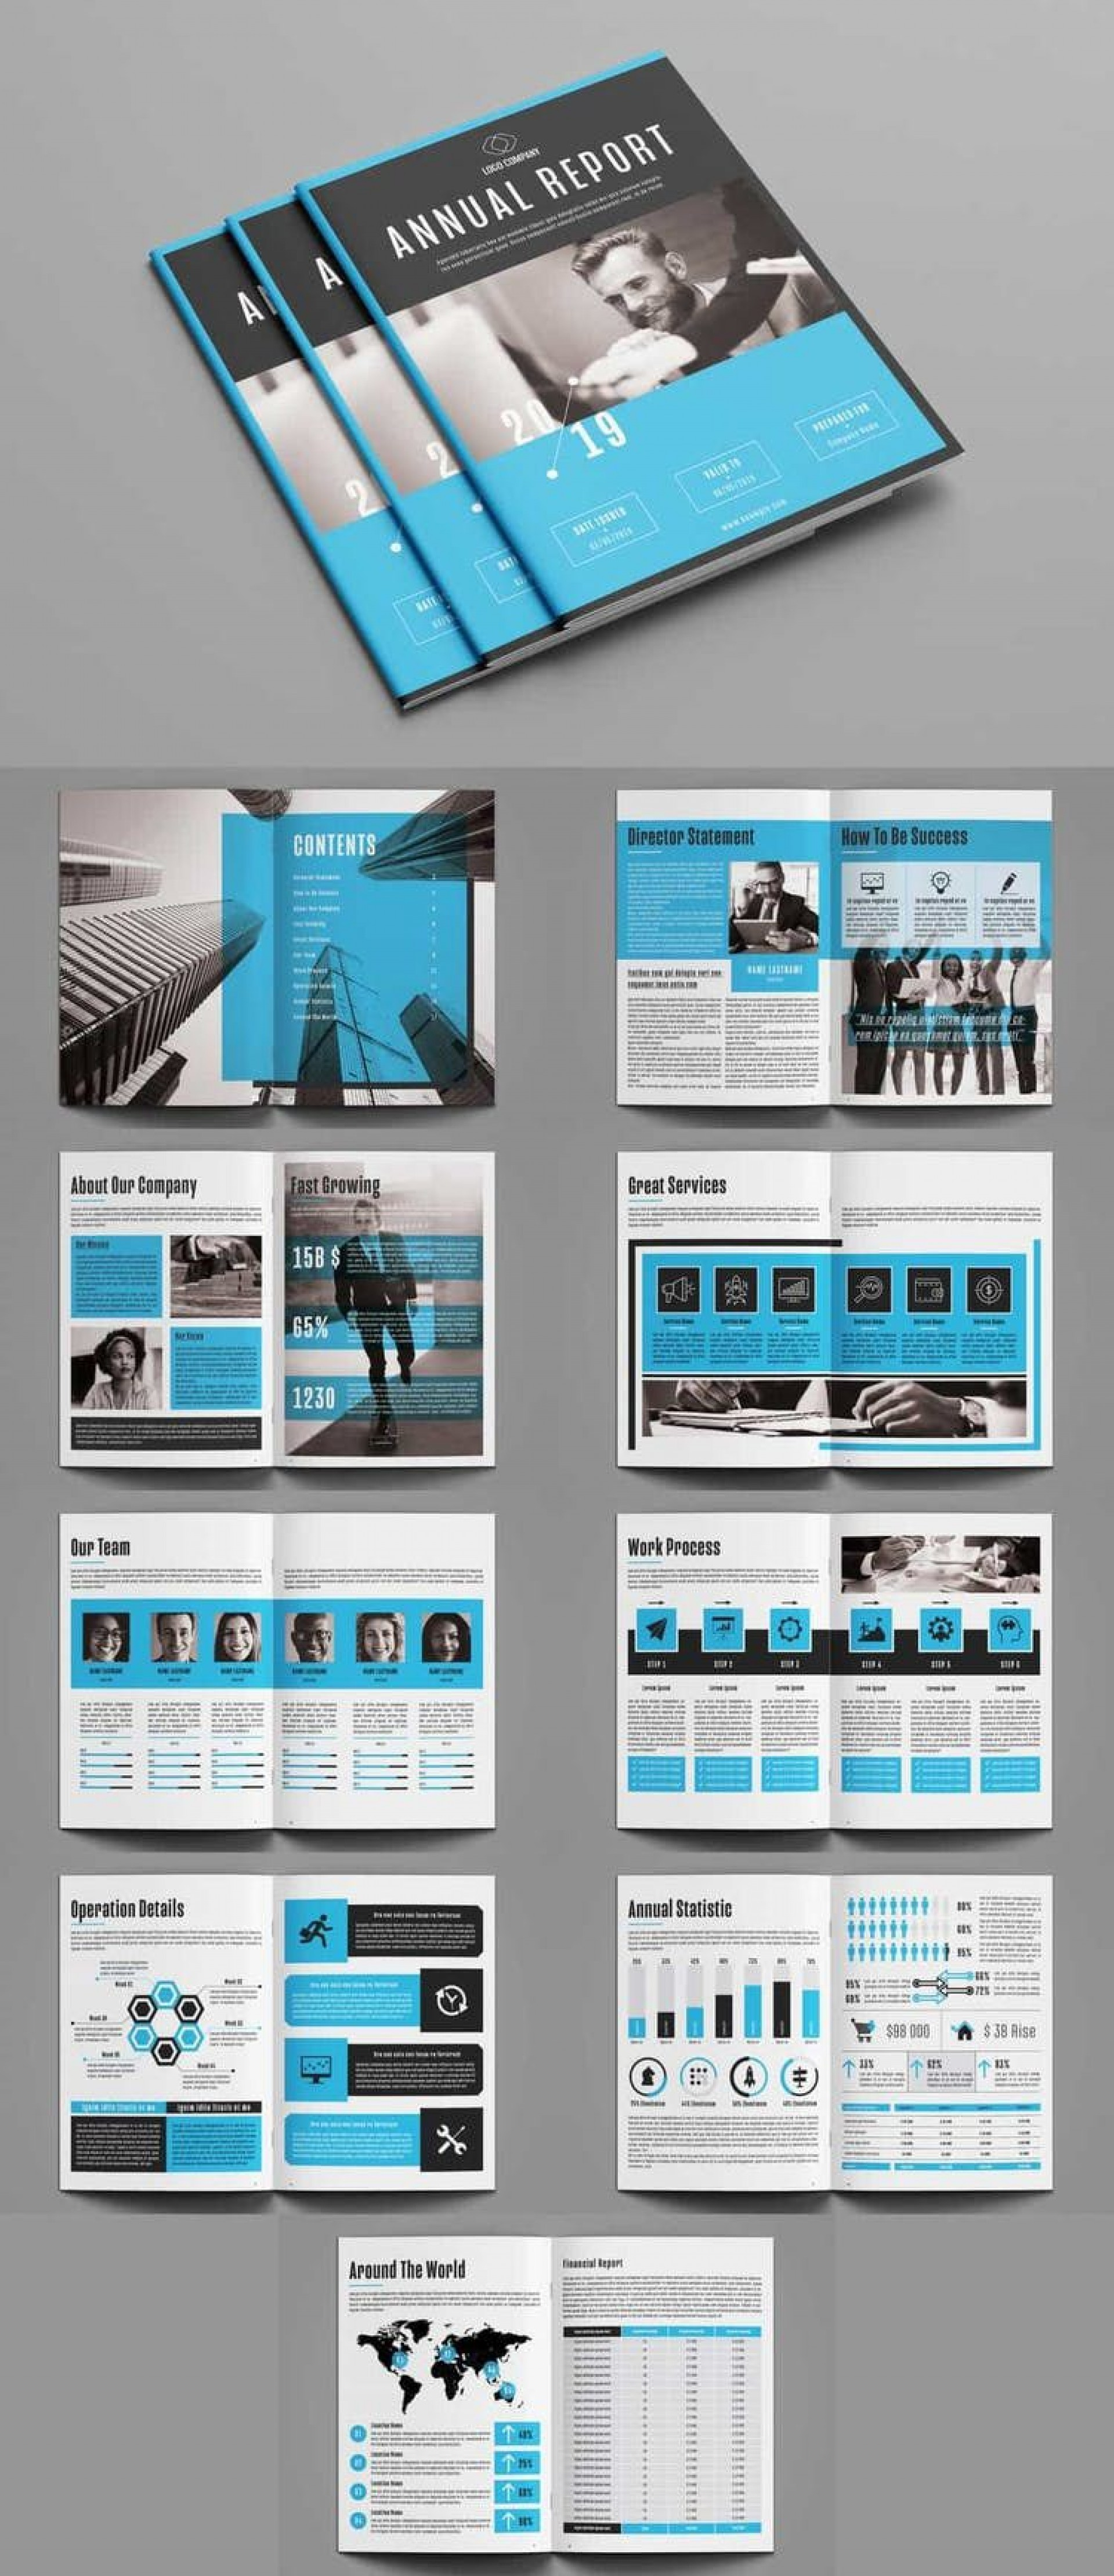 005 Best Annual Report Design Template Indesign Concept  Free Download1920